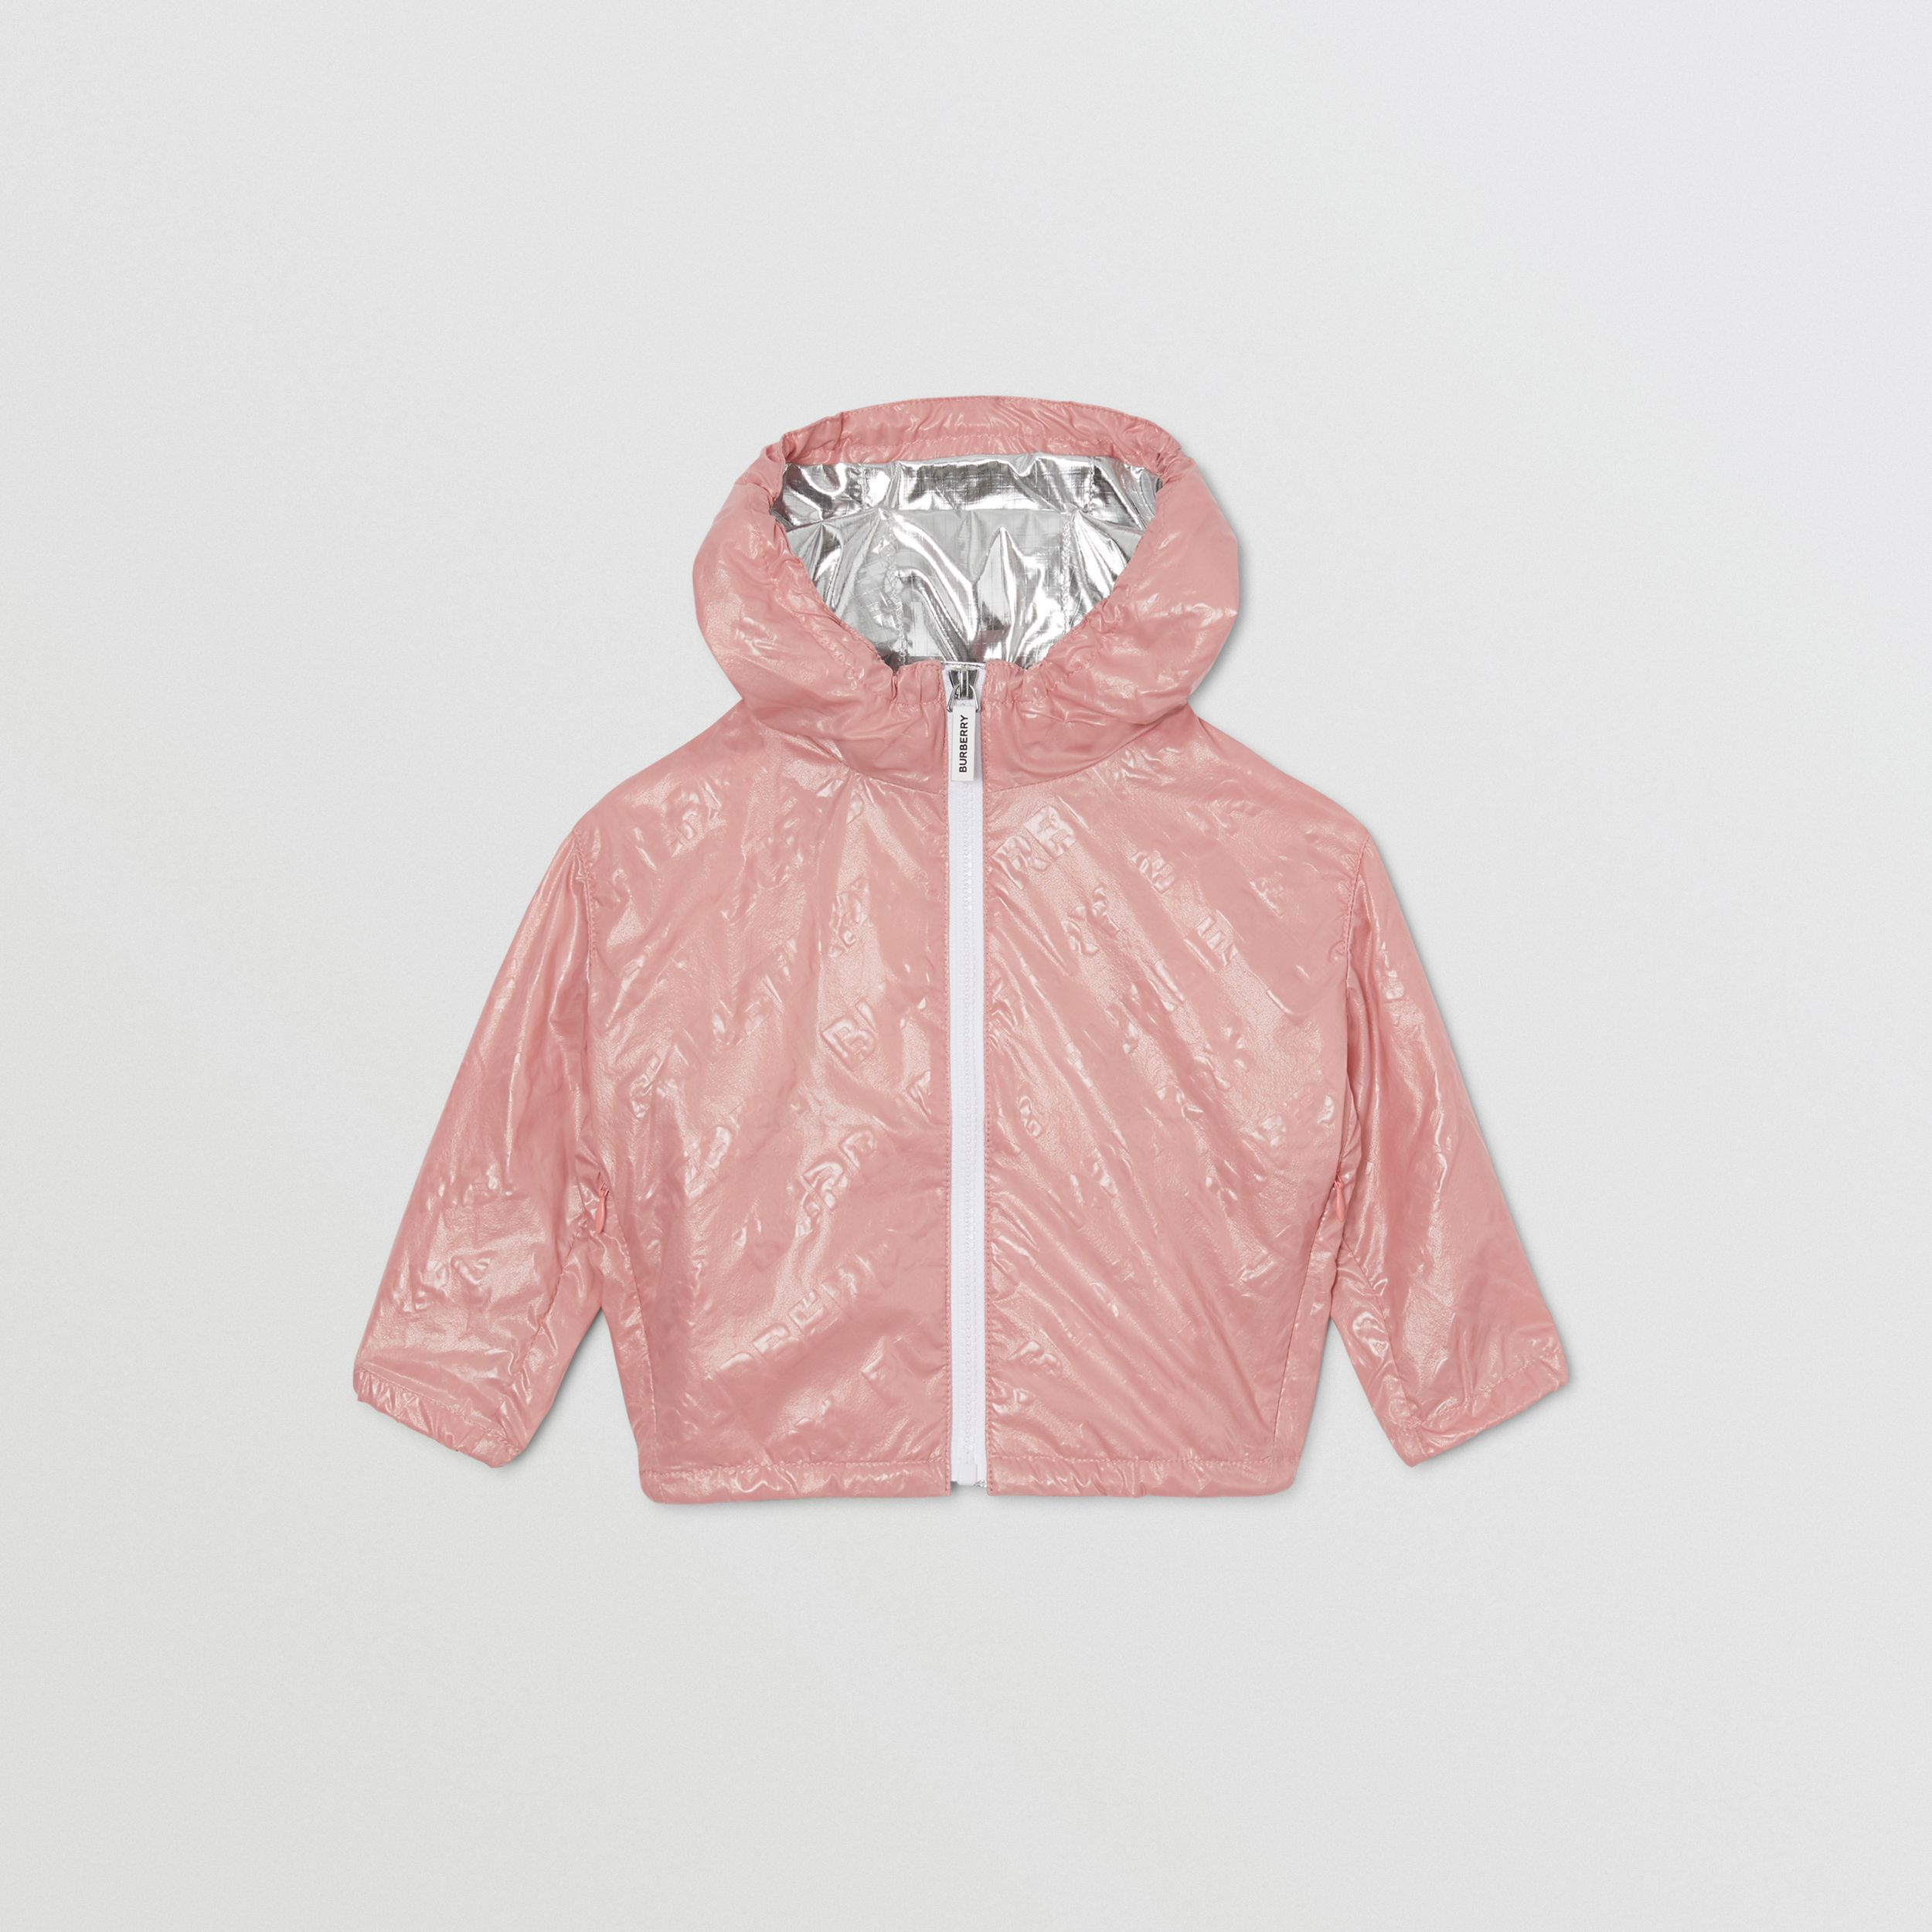 Logo Print Lightweight Hooded Jacket in Dusty Pink - Children | Burberry - 1